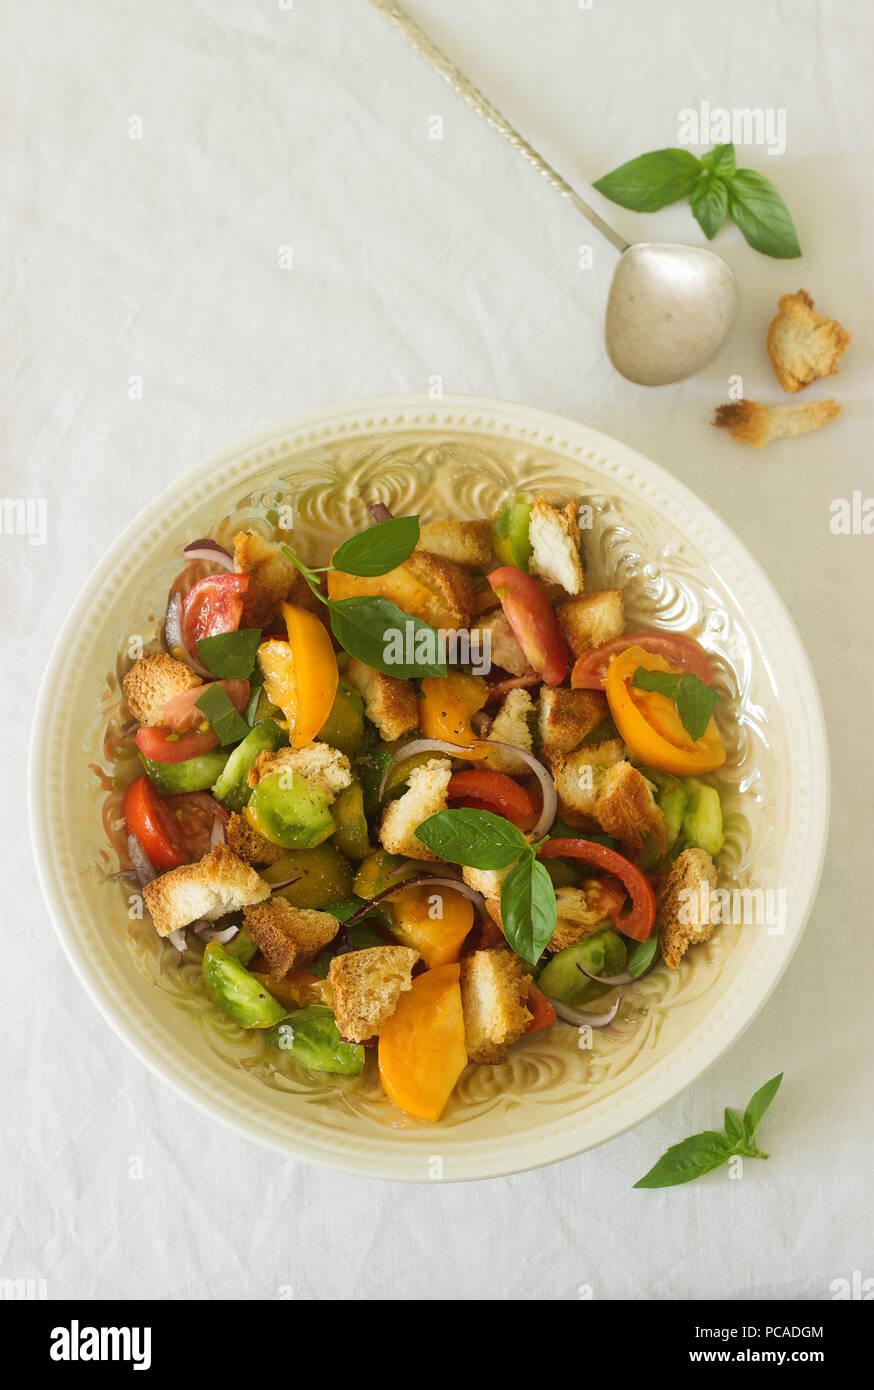 Salad of tomatoes and bread panzanella in a round plate on a light background. Rustic style. - Stock Image